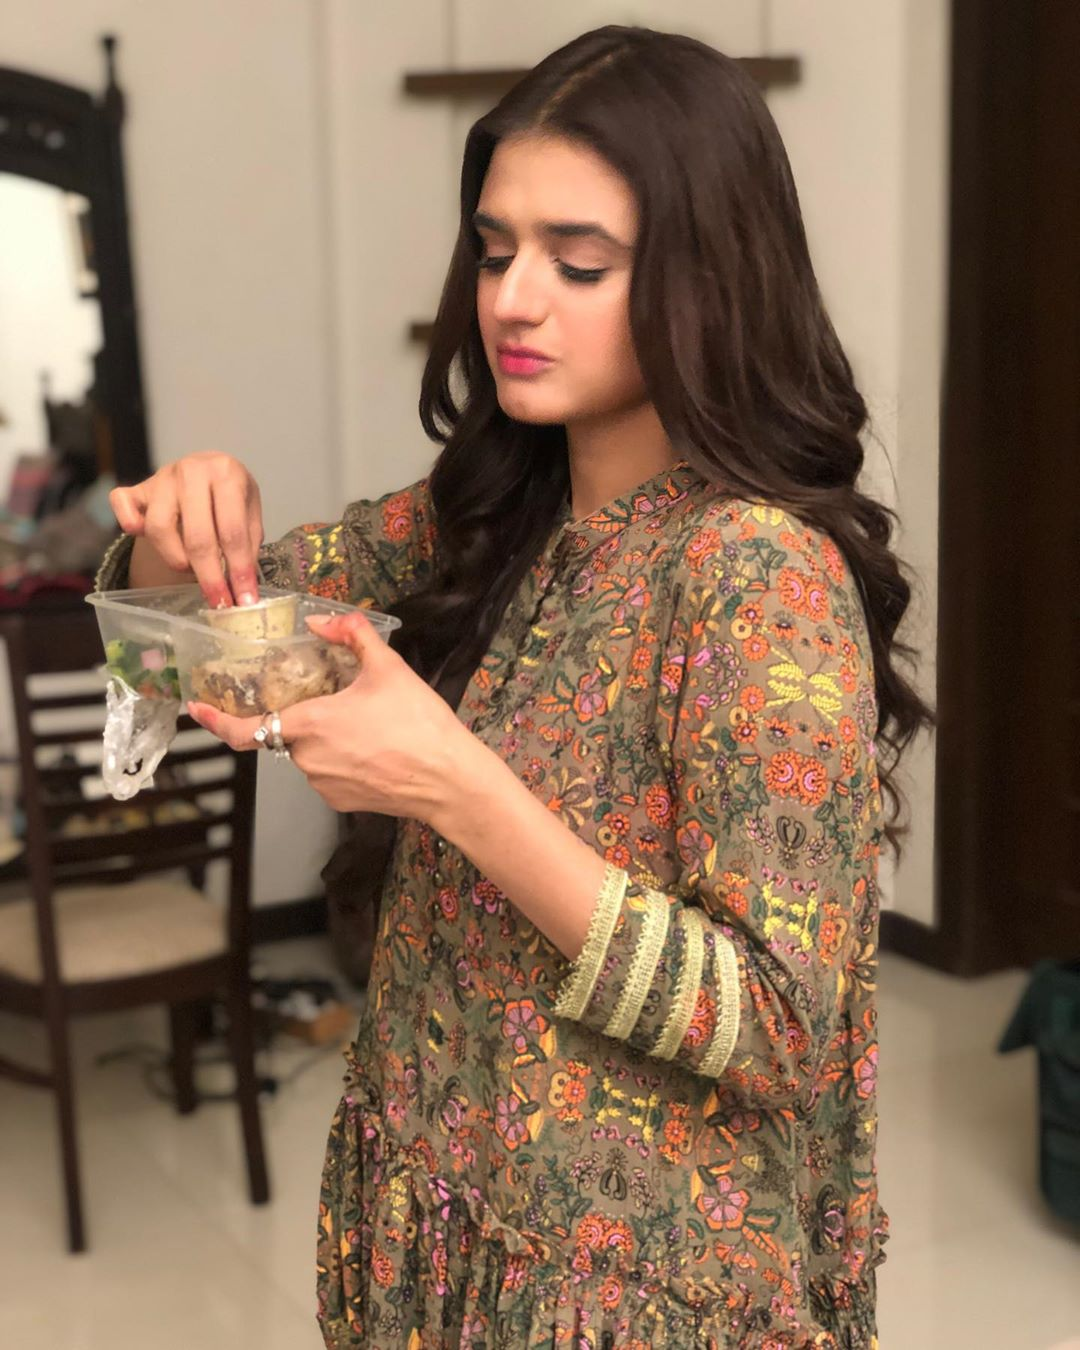 Some Latest Pictures of Actress Hira Mani